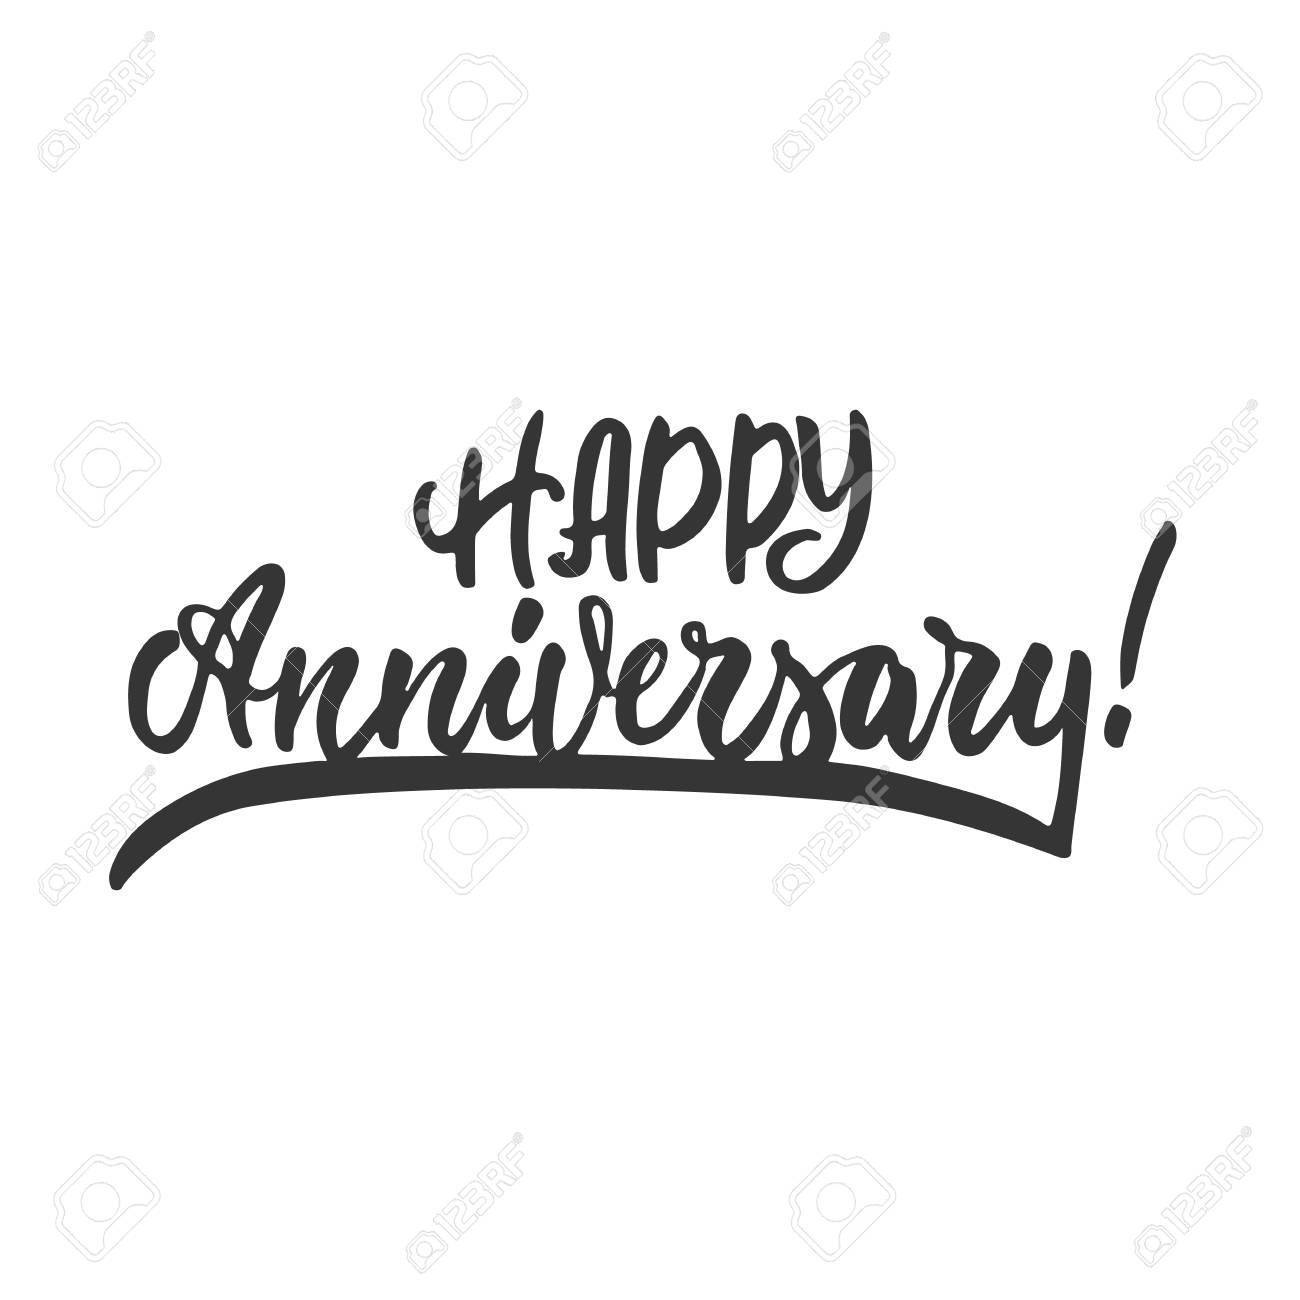 graphic regarding Happy Anniversary Printable Card named Satisfied anniversary - hand drawn lettering expression isolated upon the..